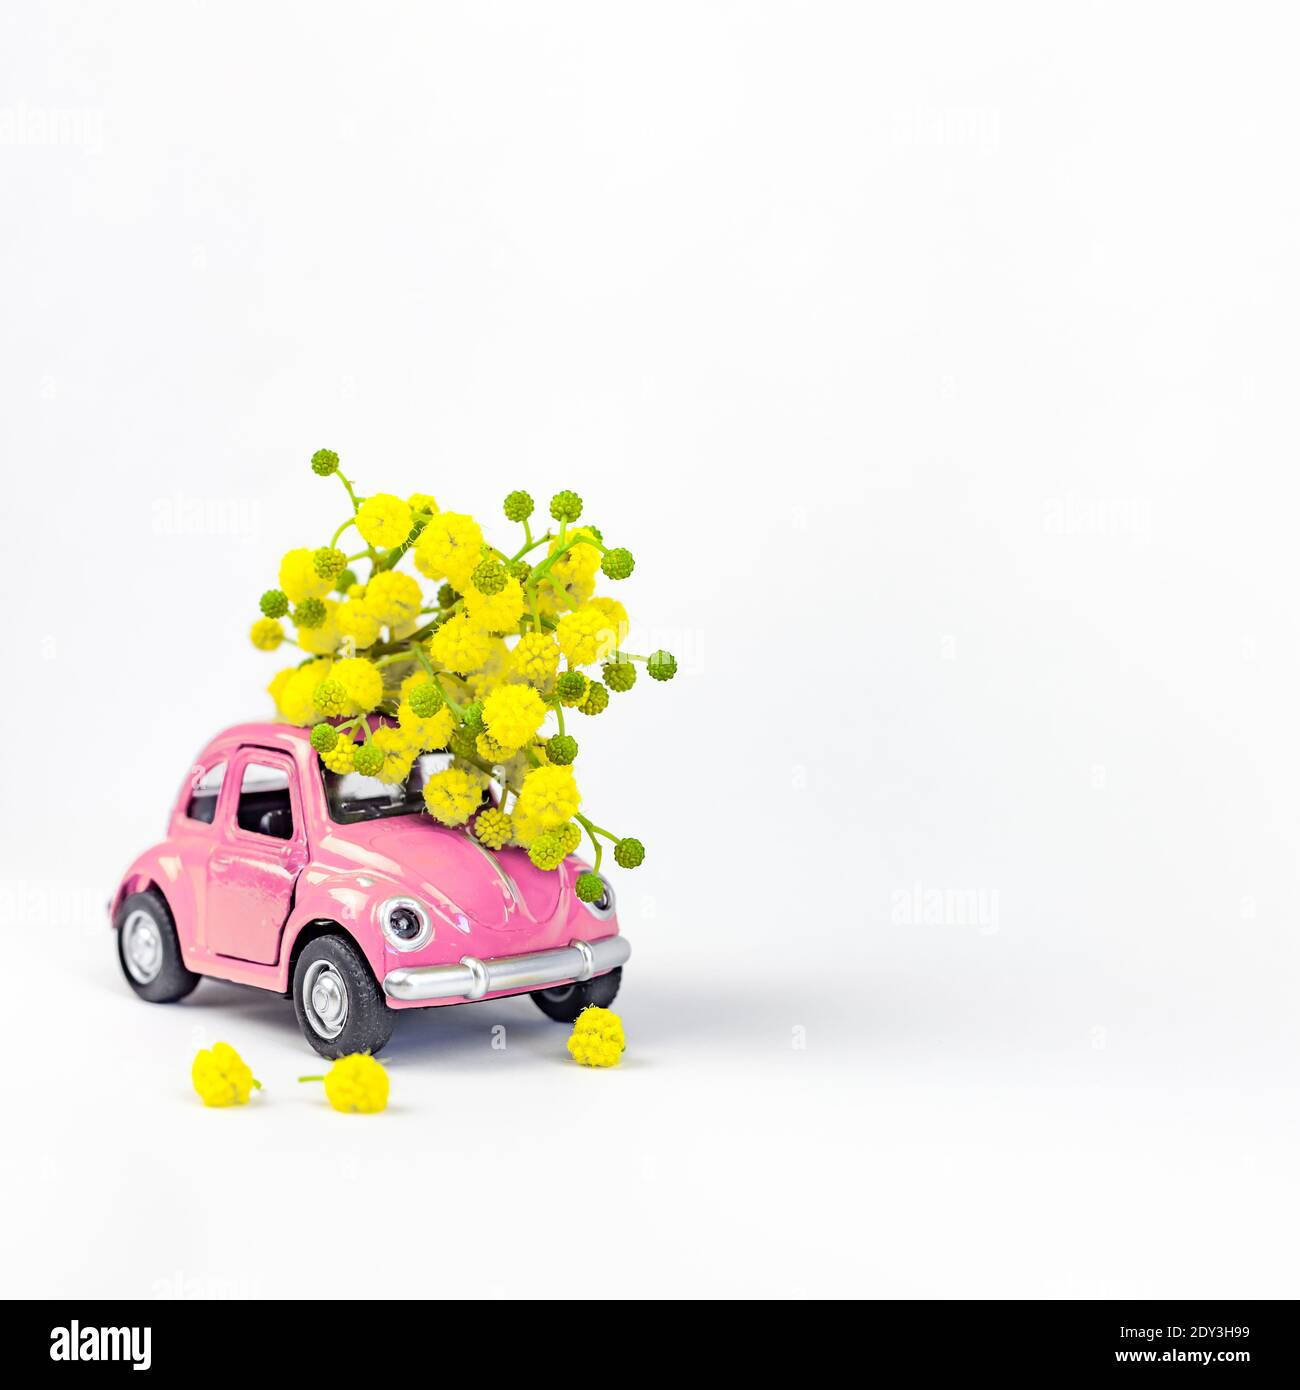 Moscow, Russia - February 23, 2019: 8 March International Women's Day card with toy model retro car delivering bouquet of mimosa flowers on white background. Valentine's day, Flower delivery concept Stock Photo